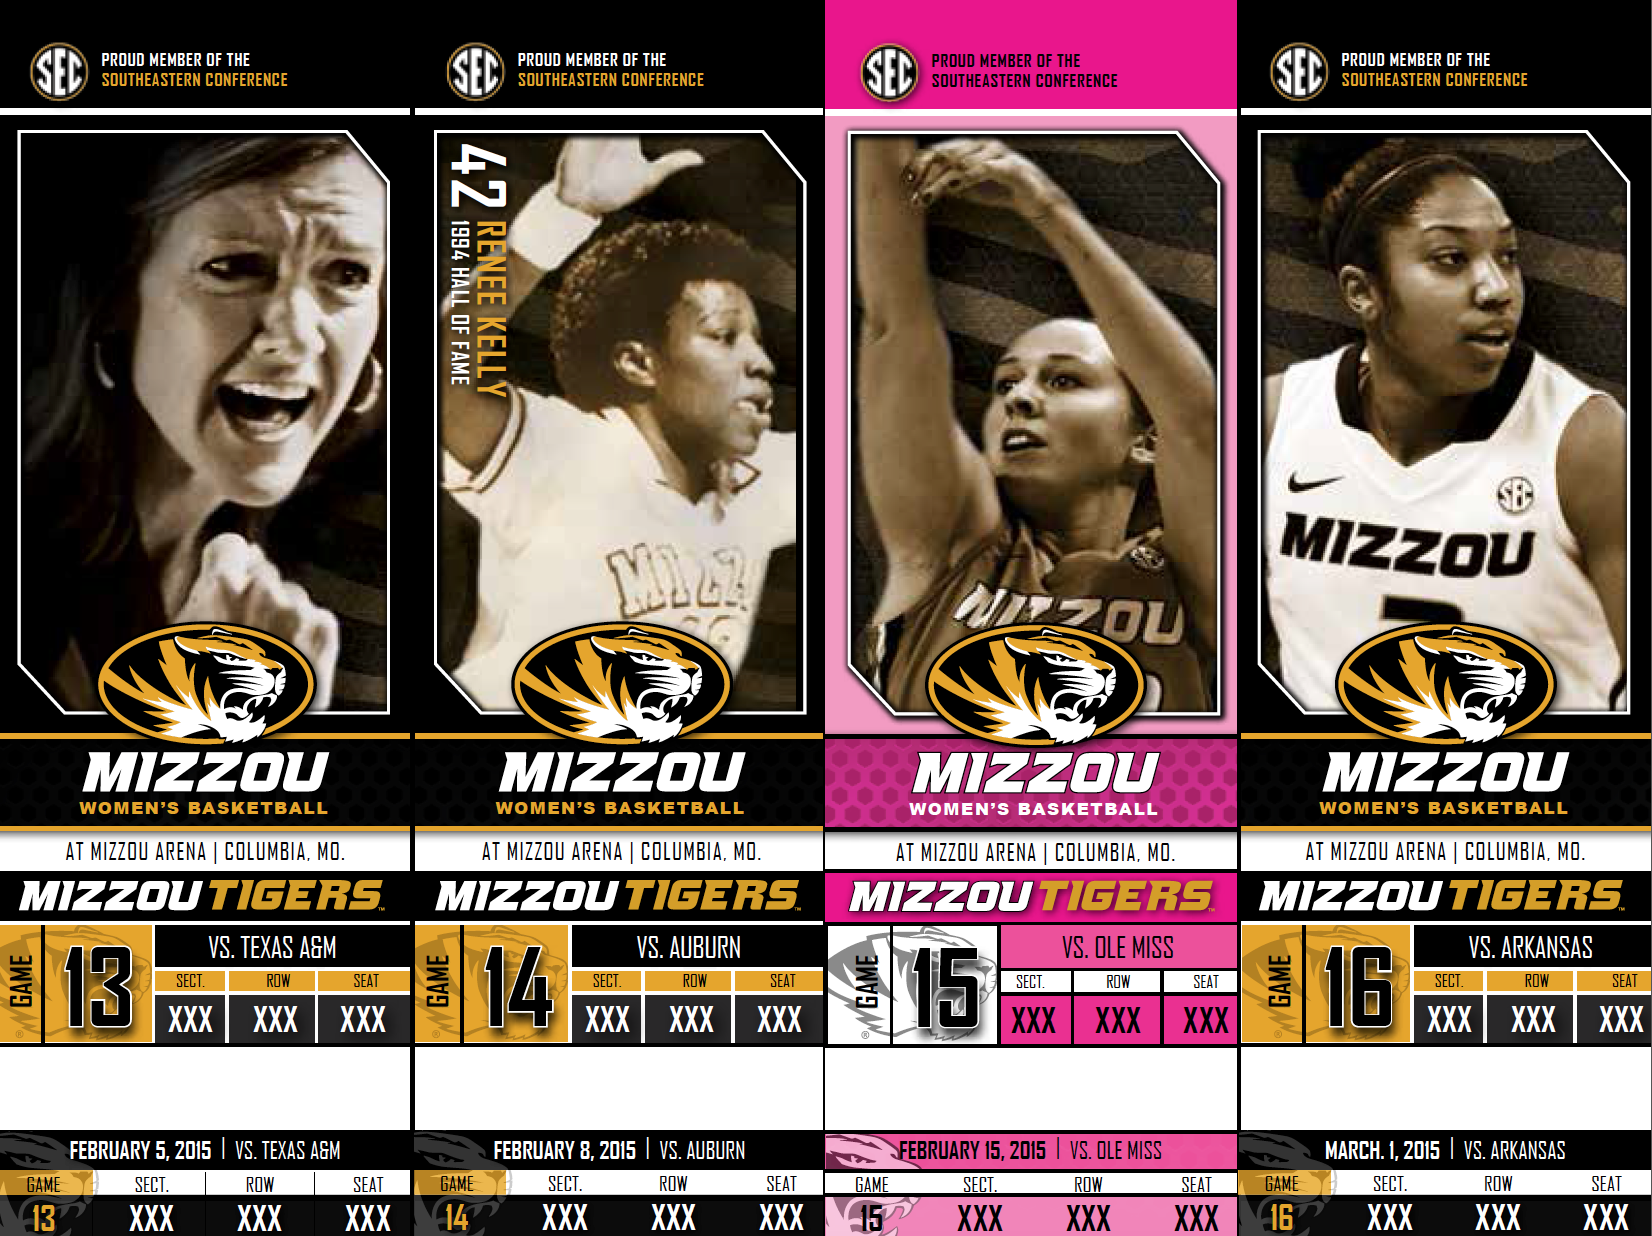 2015 Mizzou Tigers Women's Basketball Season Tickets with Breast Cancer Game created and designed by JA Creative Group